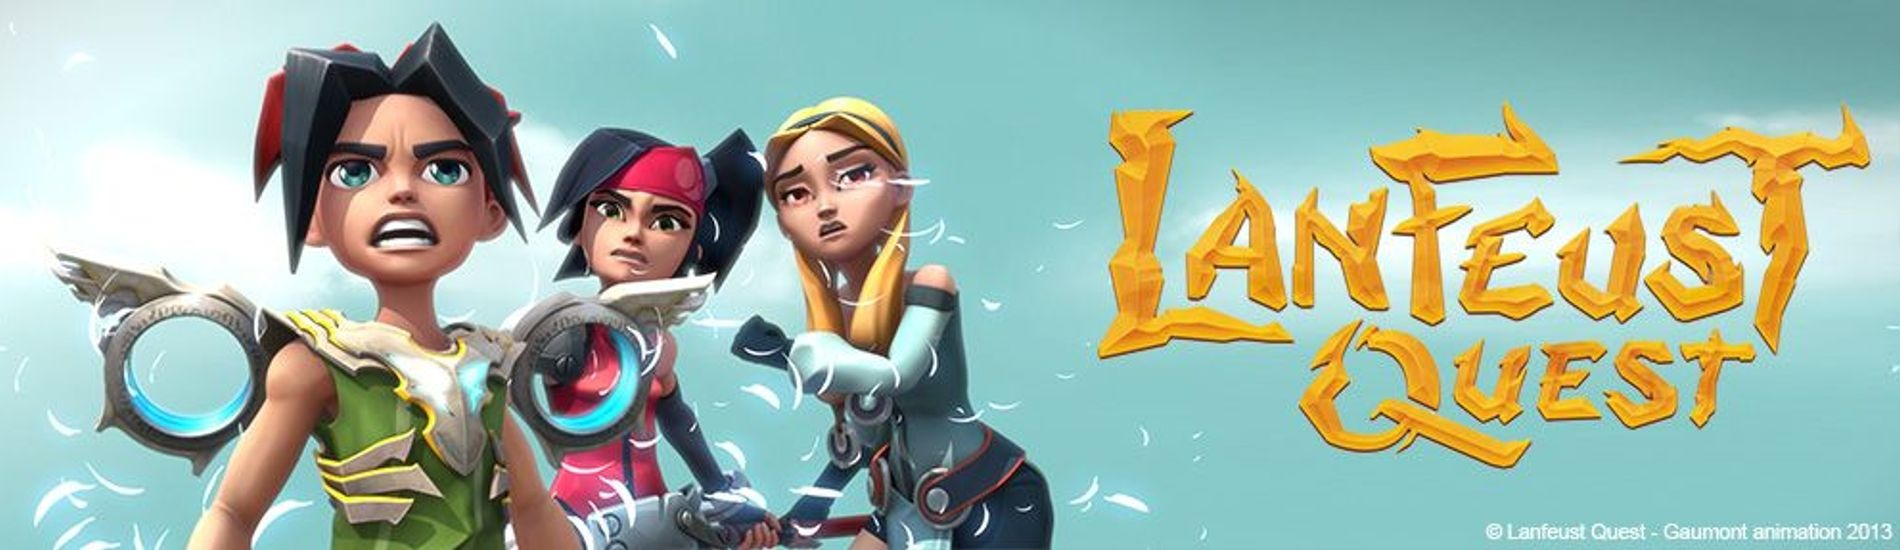 Lanfeust Quest en streaming sur Gulli Replay